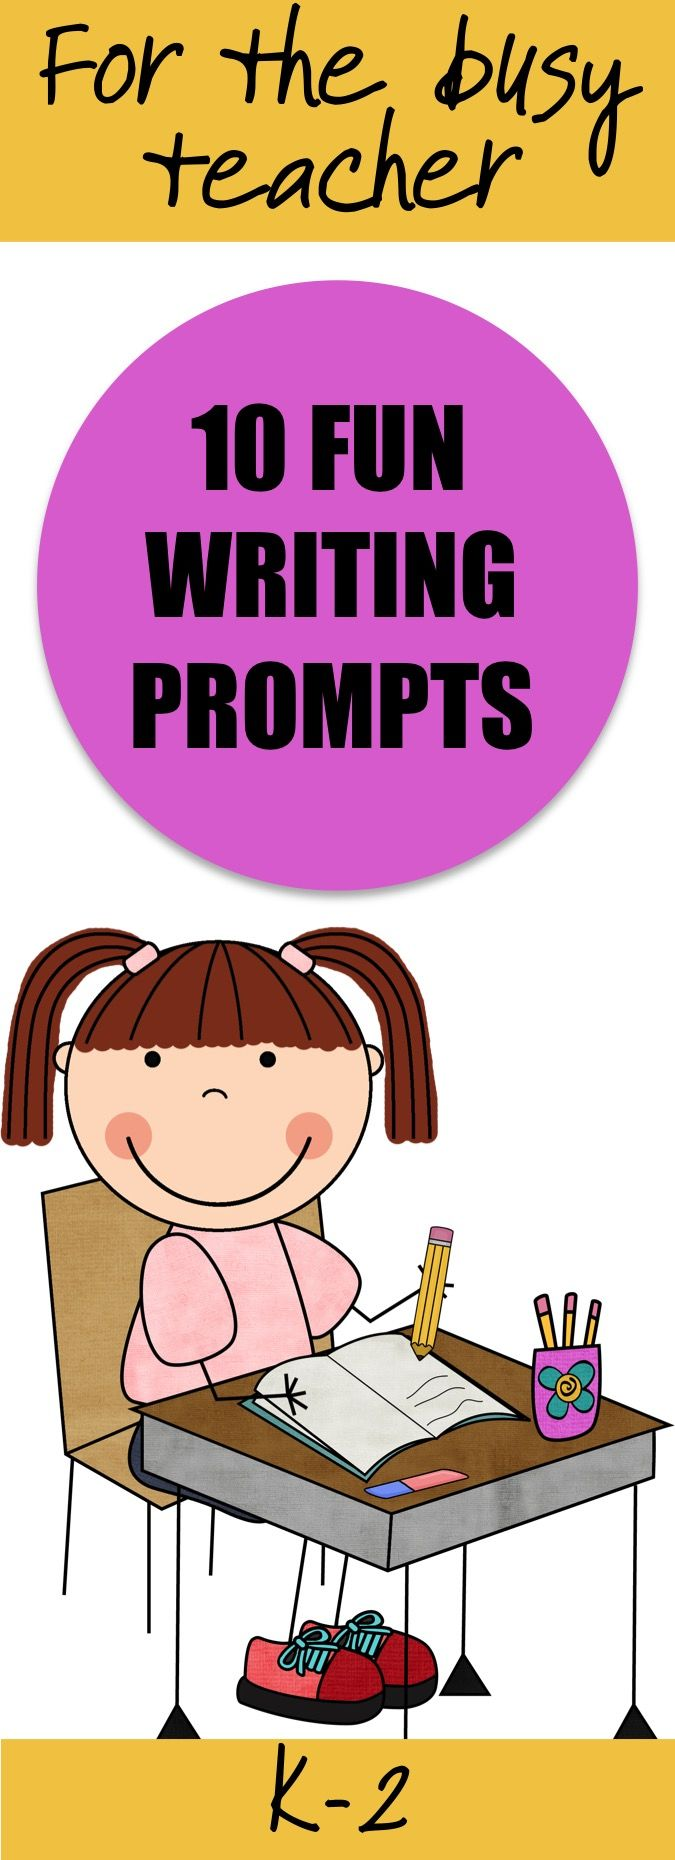 Emergent writing prompts for fall that include: fall, the farm, school, fire prevention, Remembrance/Veteran's Day, Thanksgiving and Halloween.